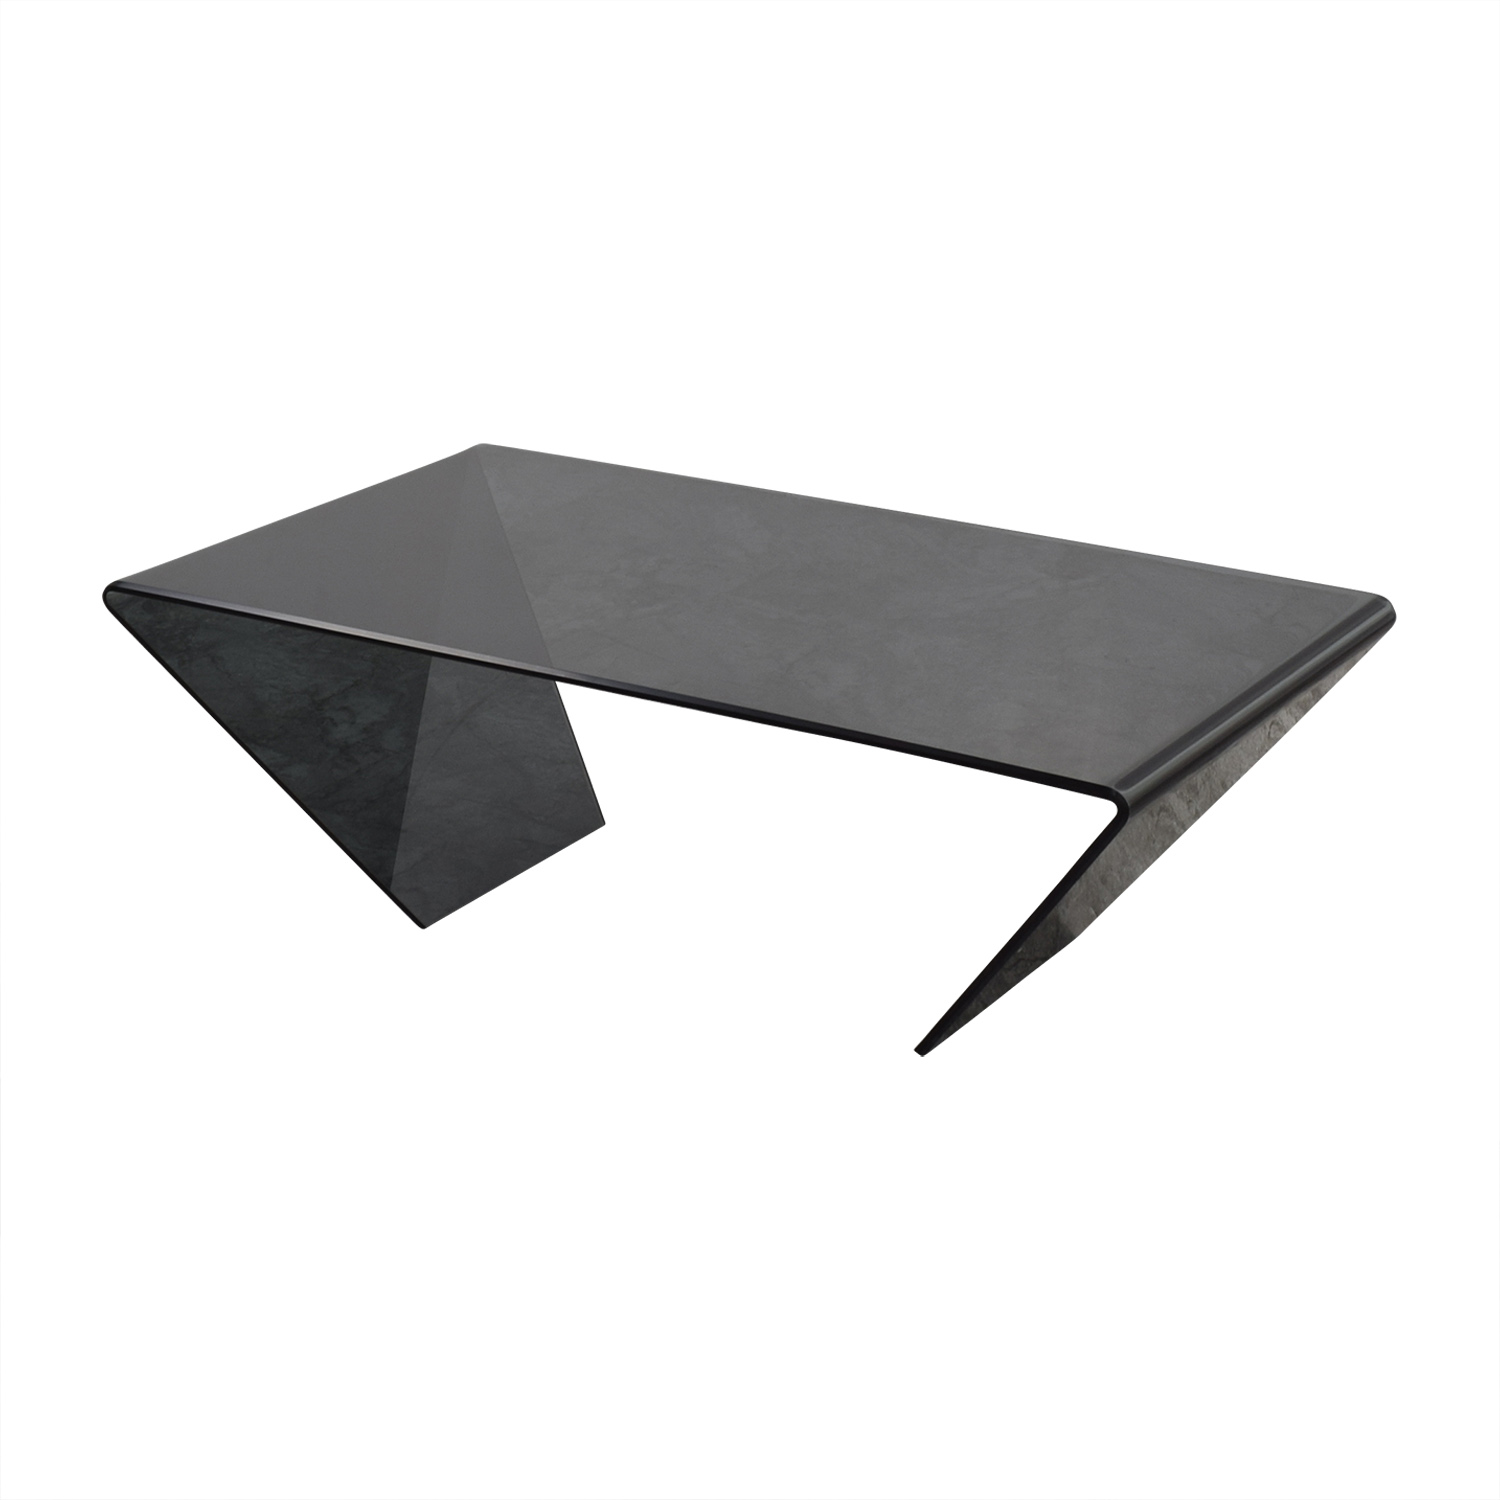 90 off j m furniture j m furniture bent black glass coffee table tables Used glass coffee table